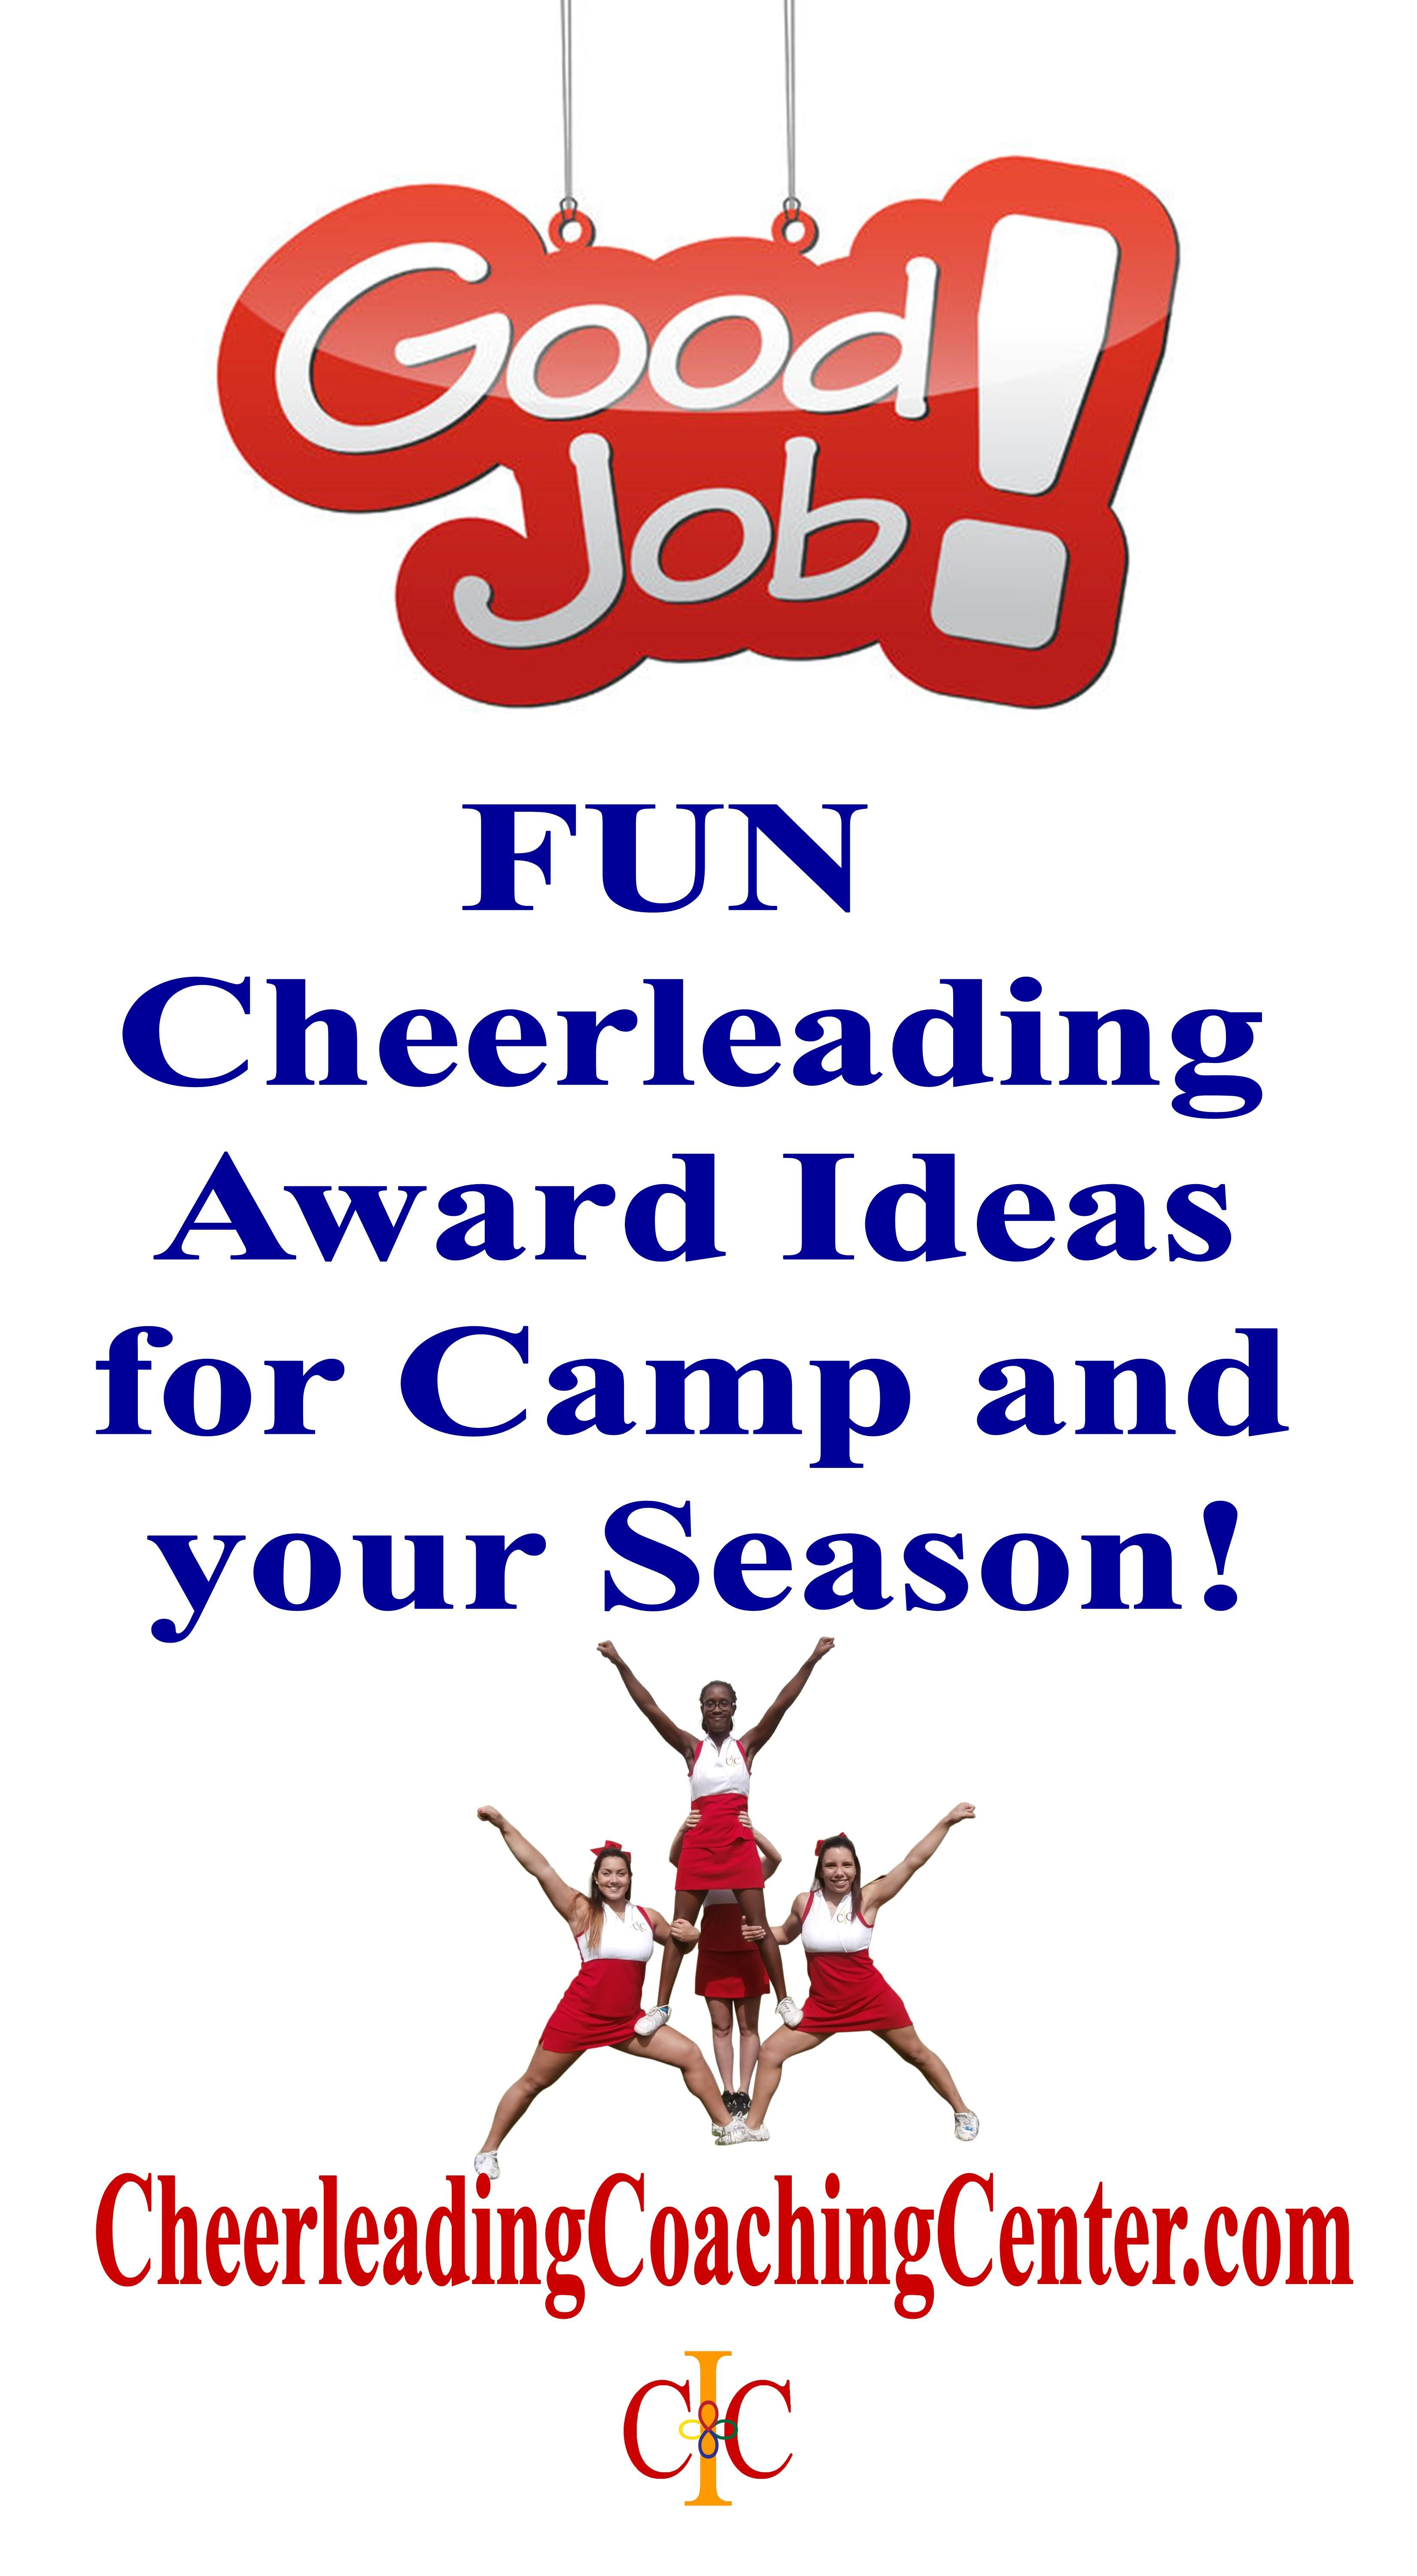 giving out cheerleading awards throughout your season is a great way